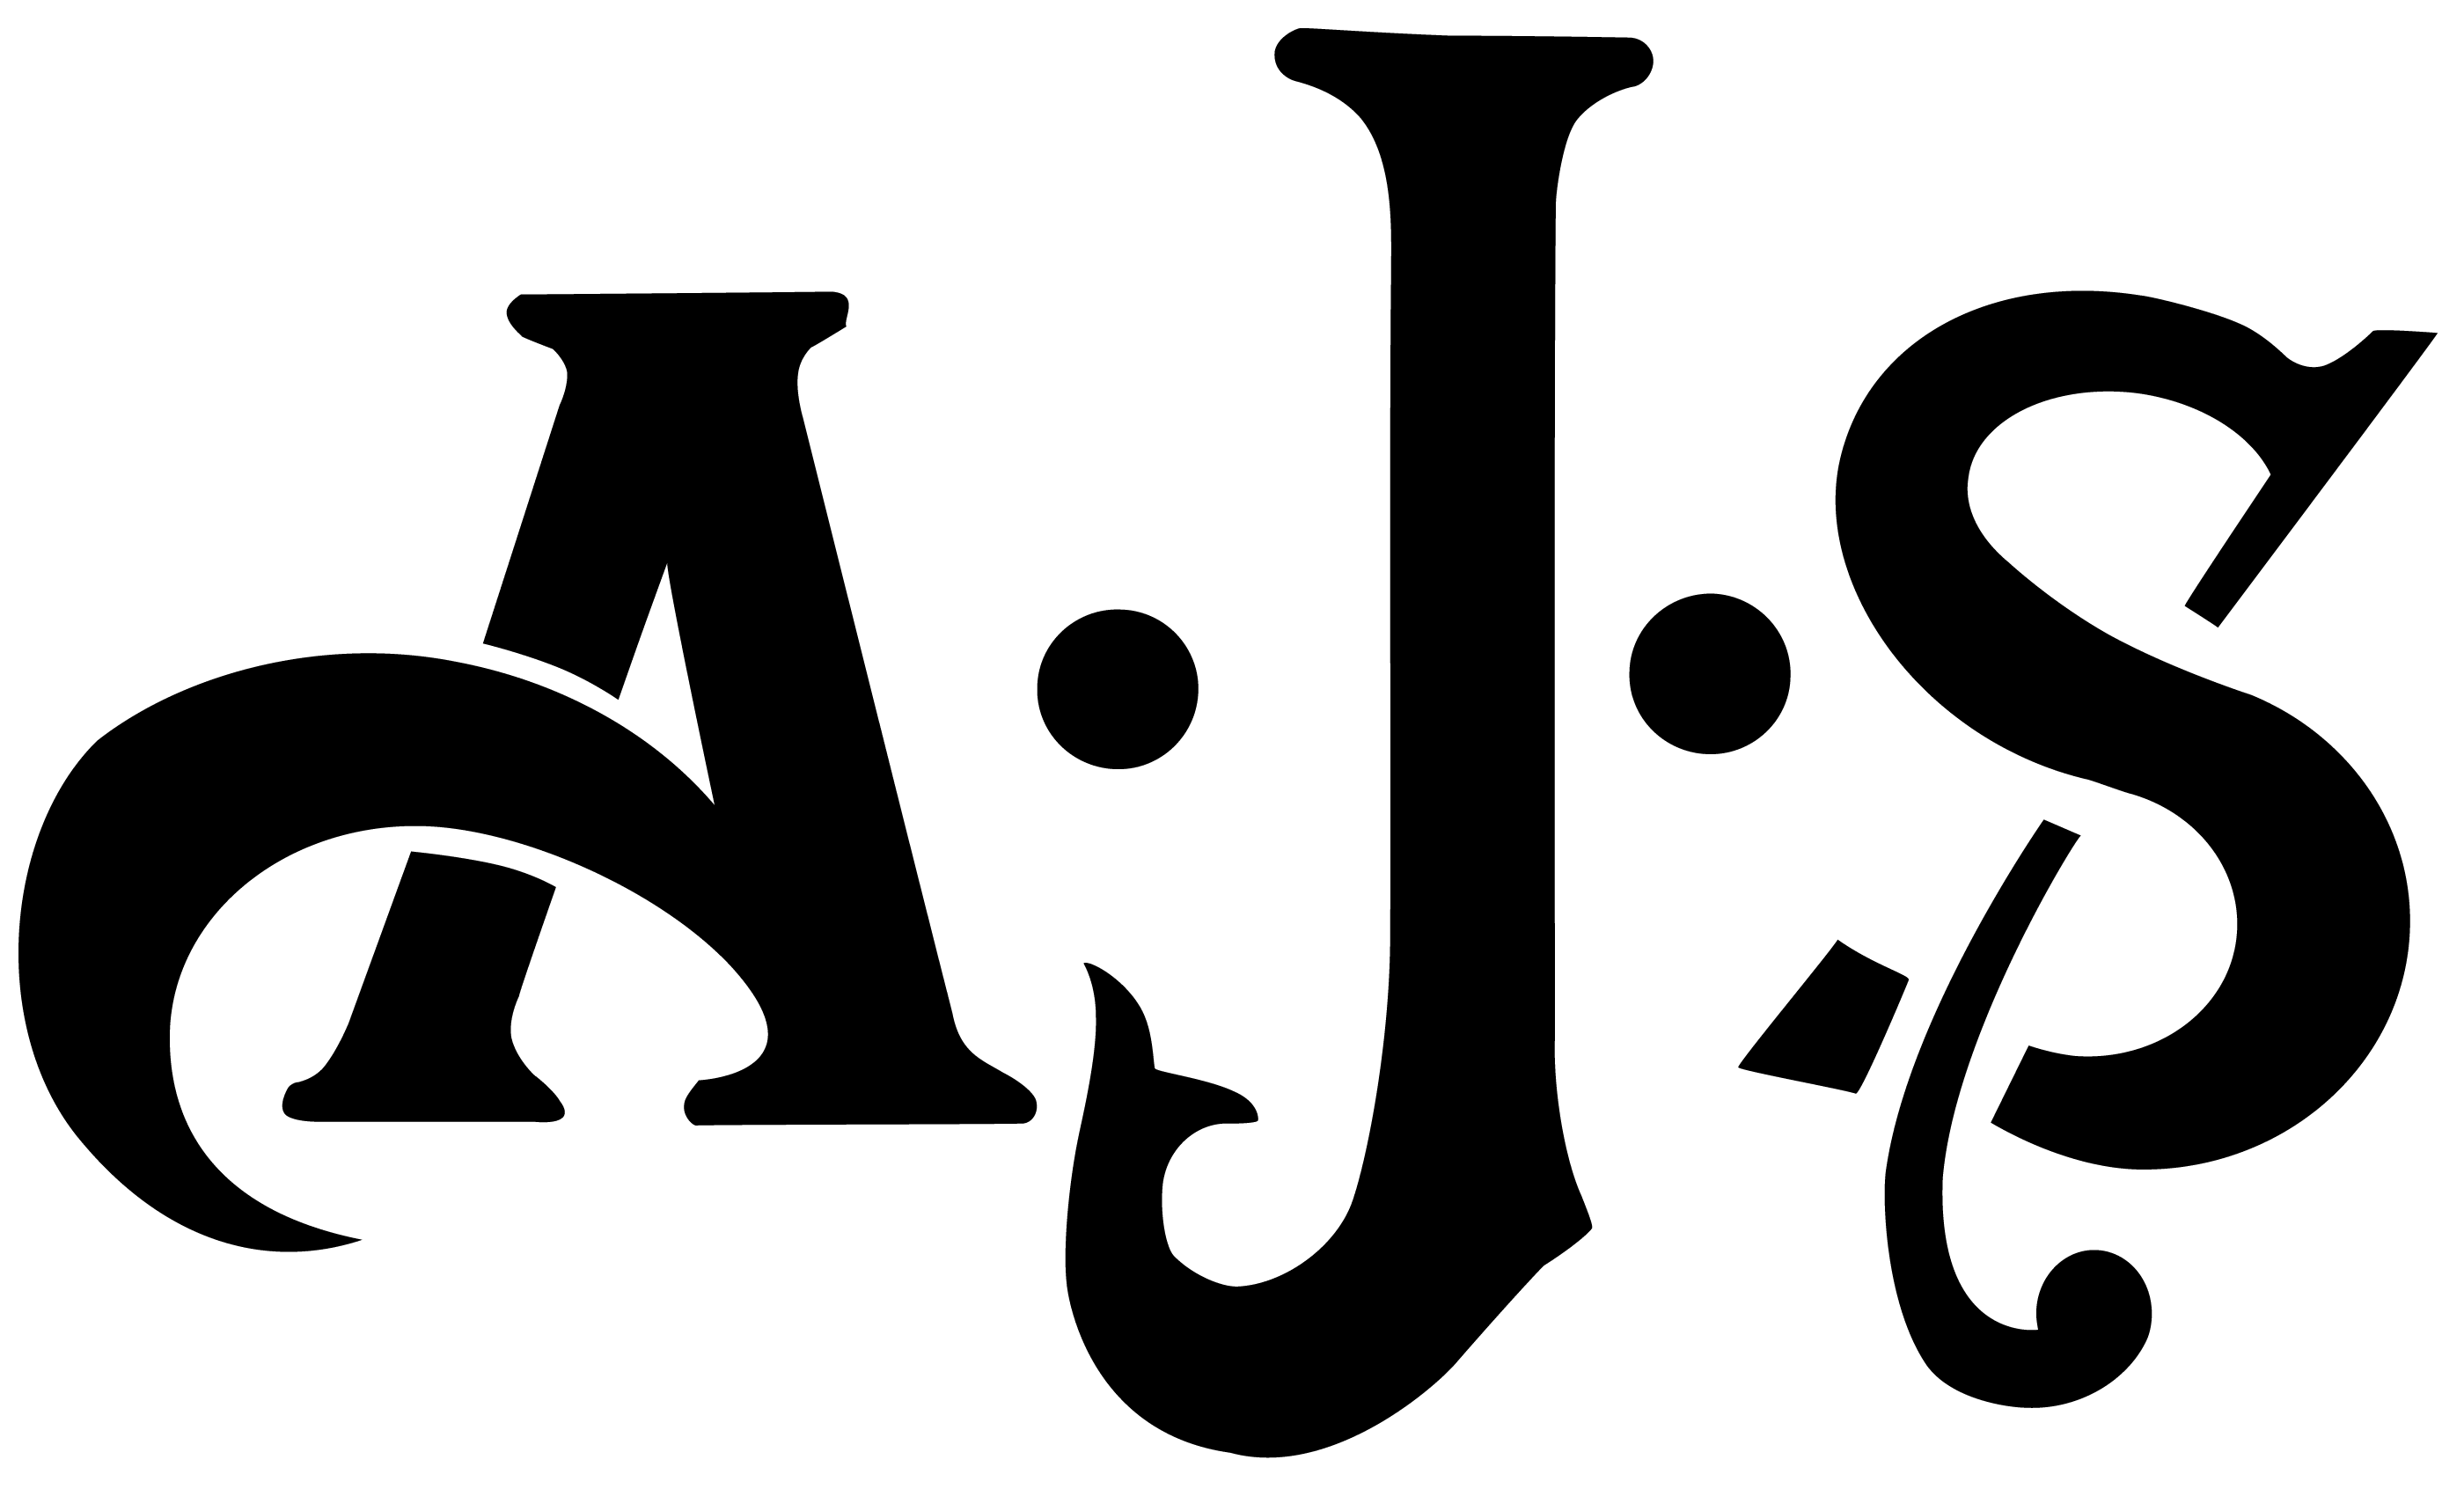 A J S PNG - 38093